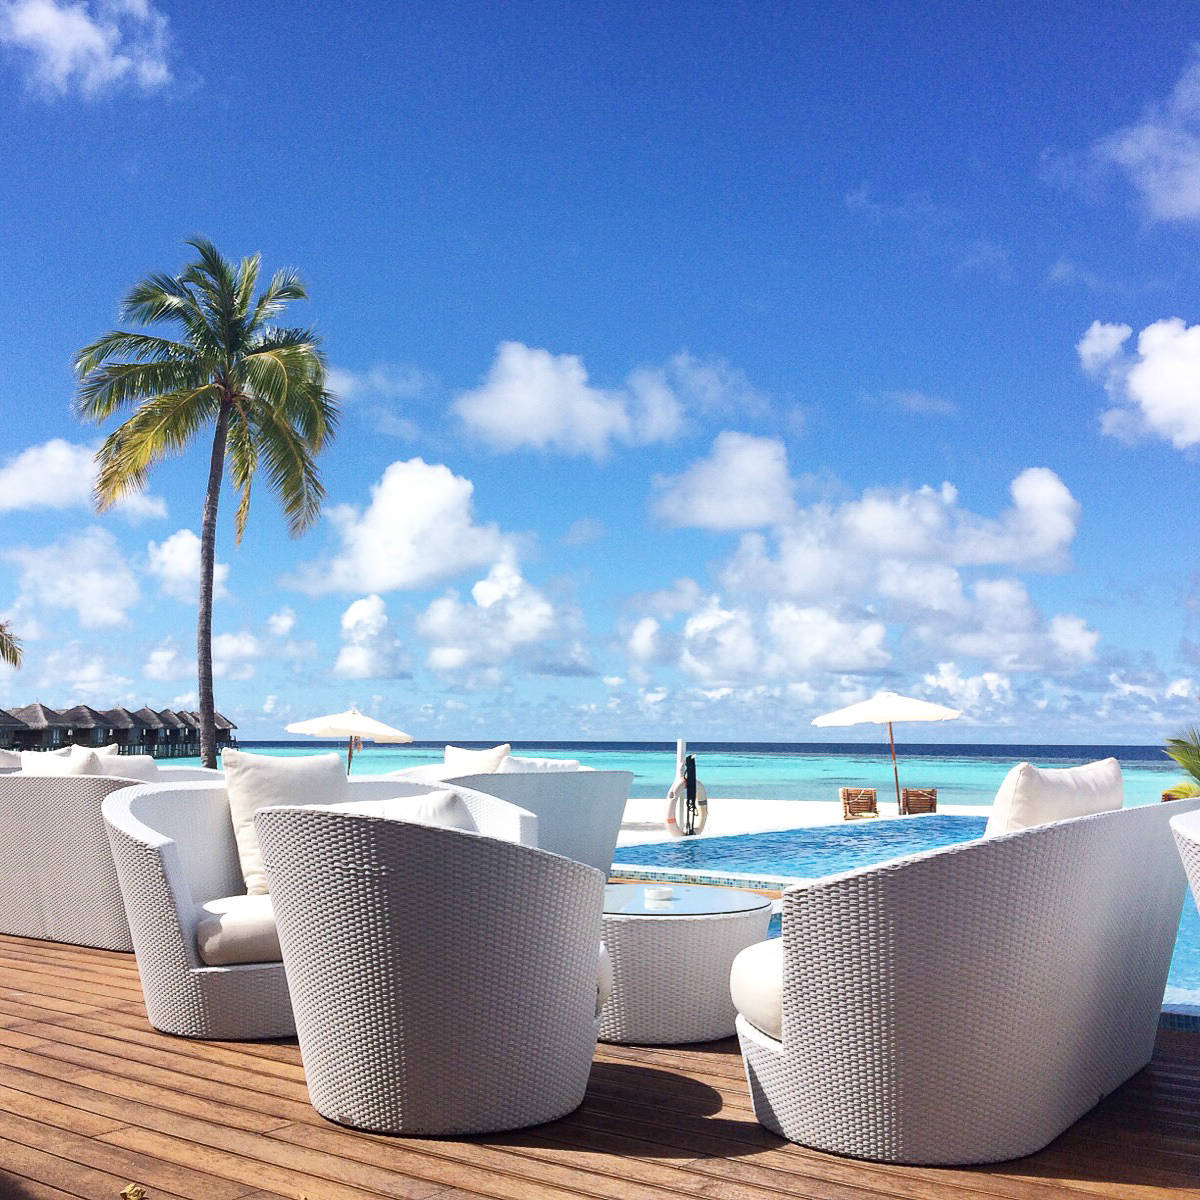 How to make a trip to the Maldives affordable-10